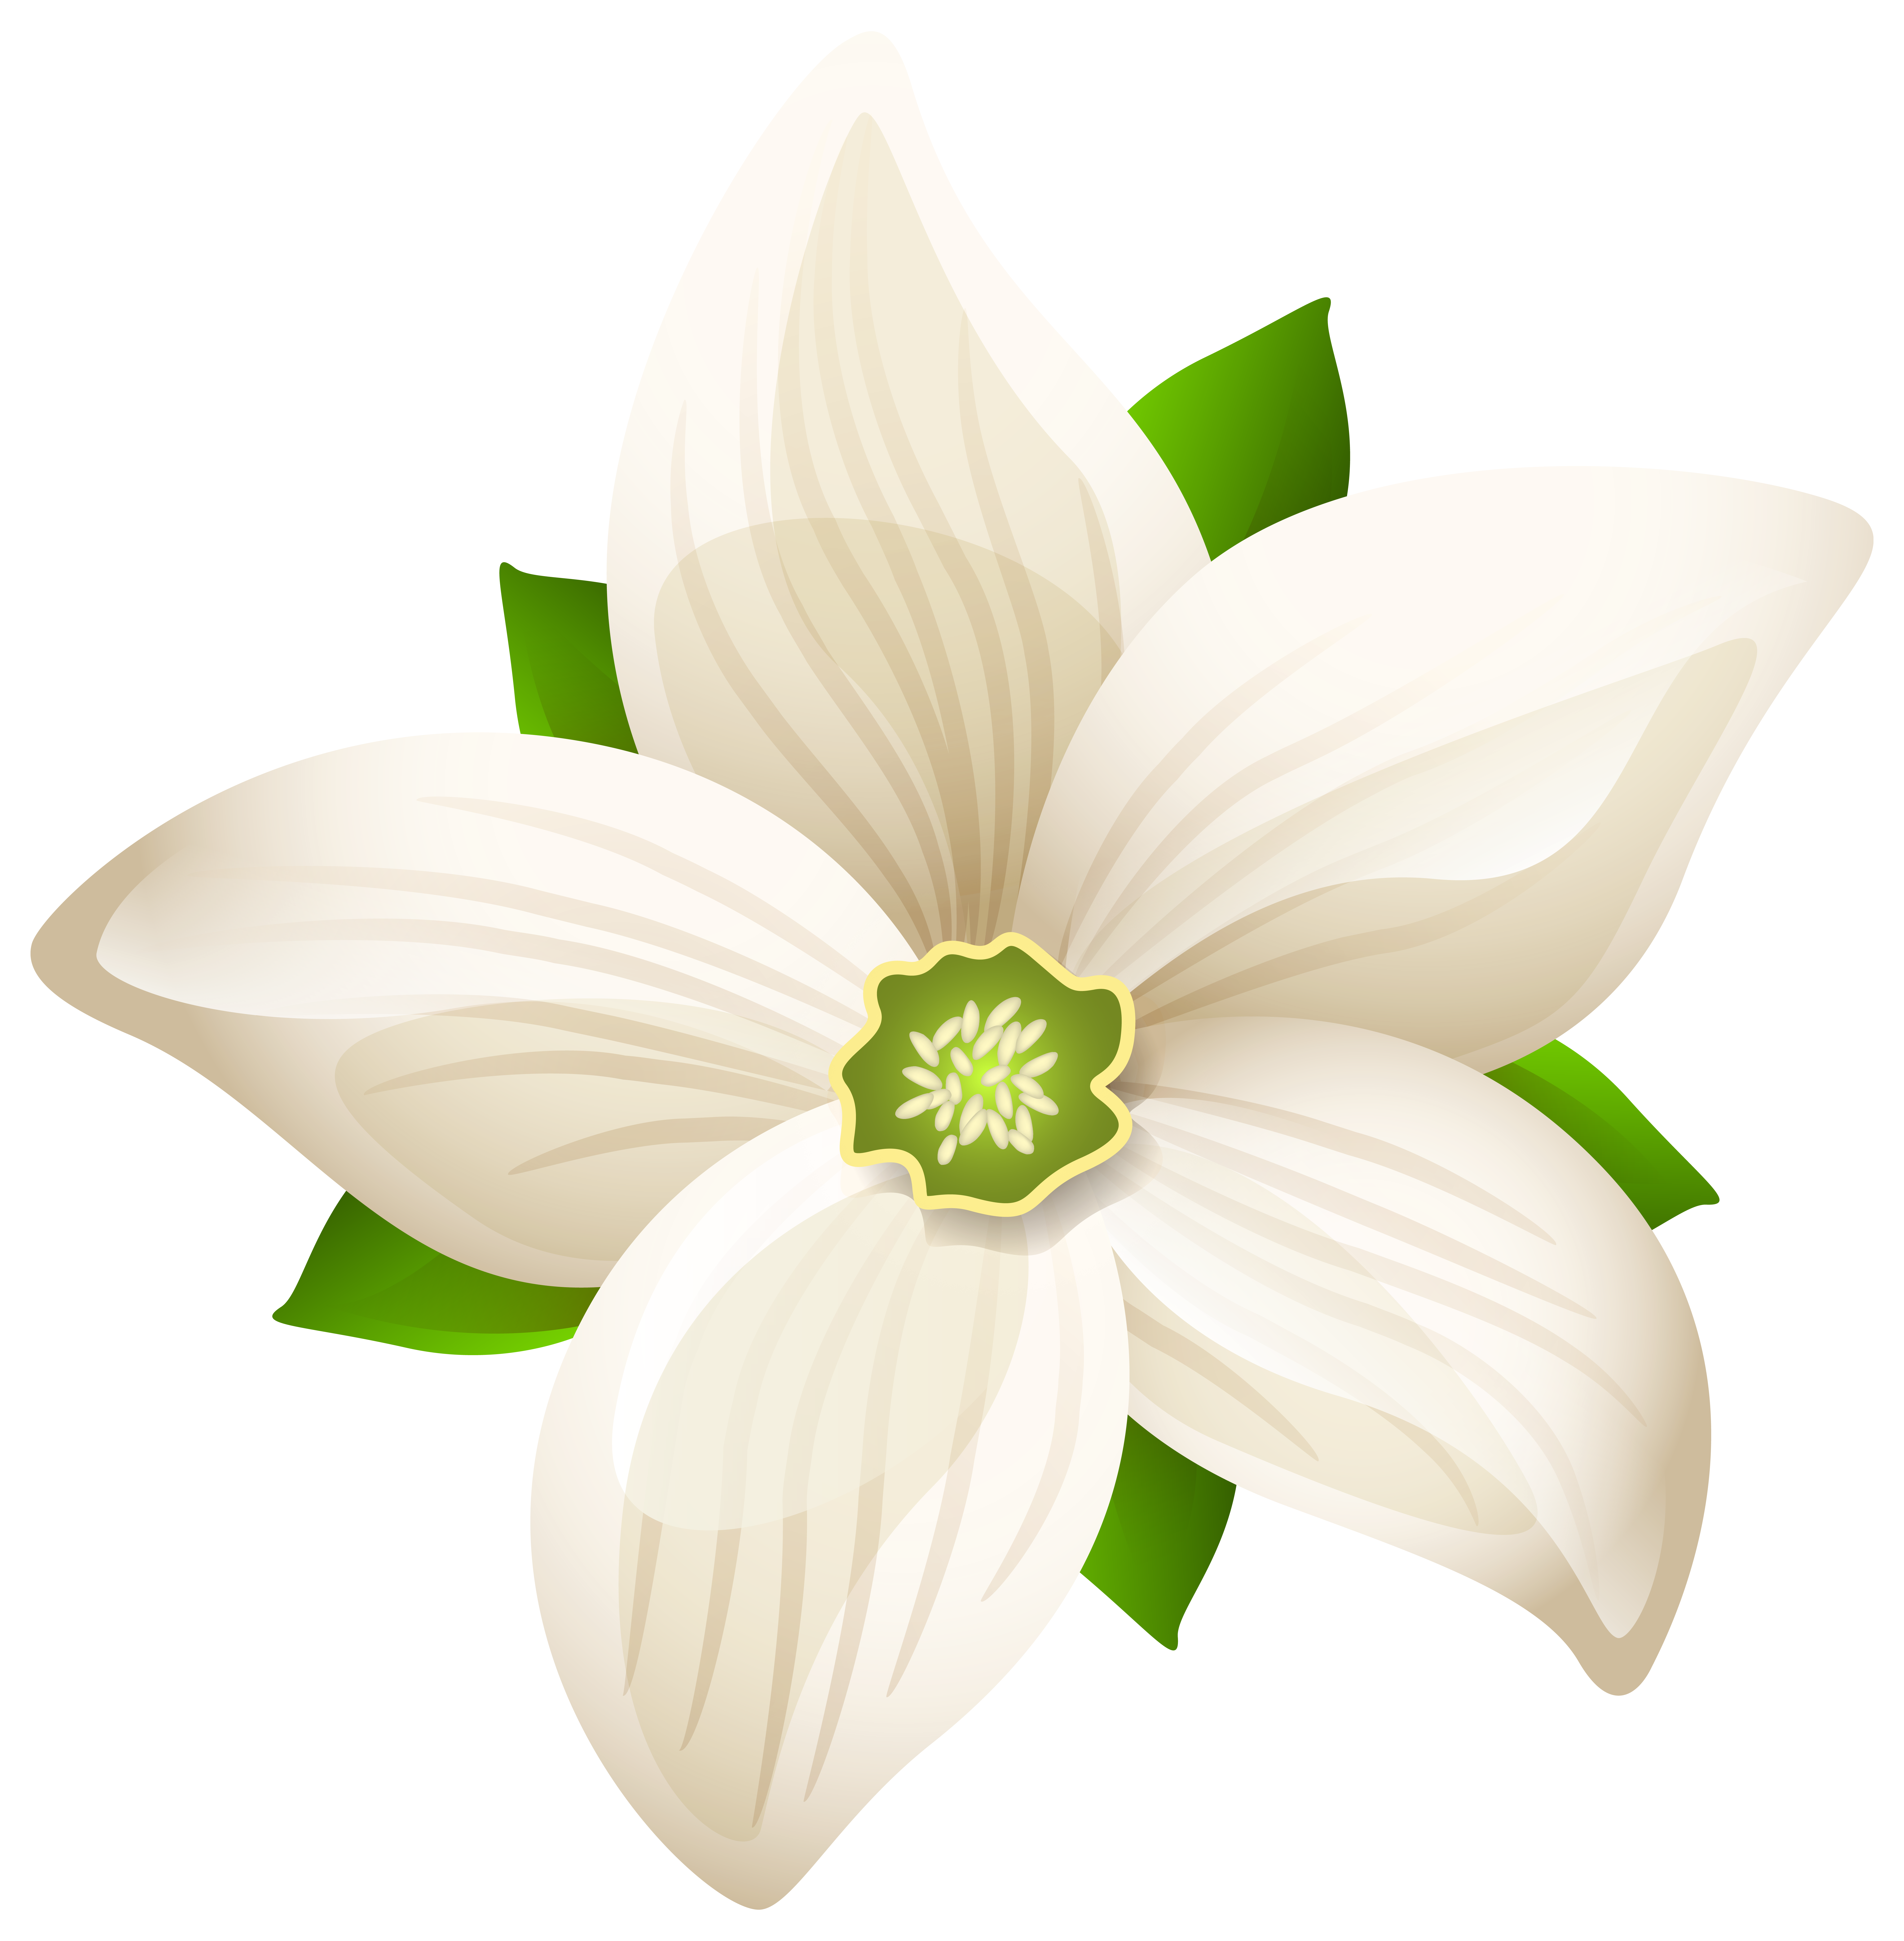 White flower clipart png image black and white download White flower clipart png - ClipartFest image black and white download